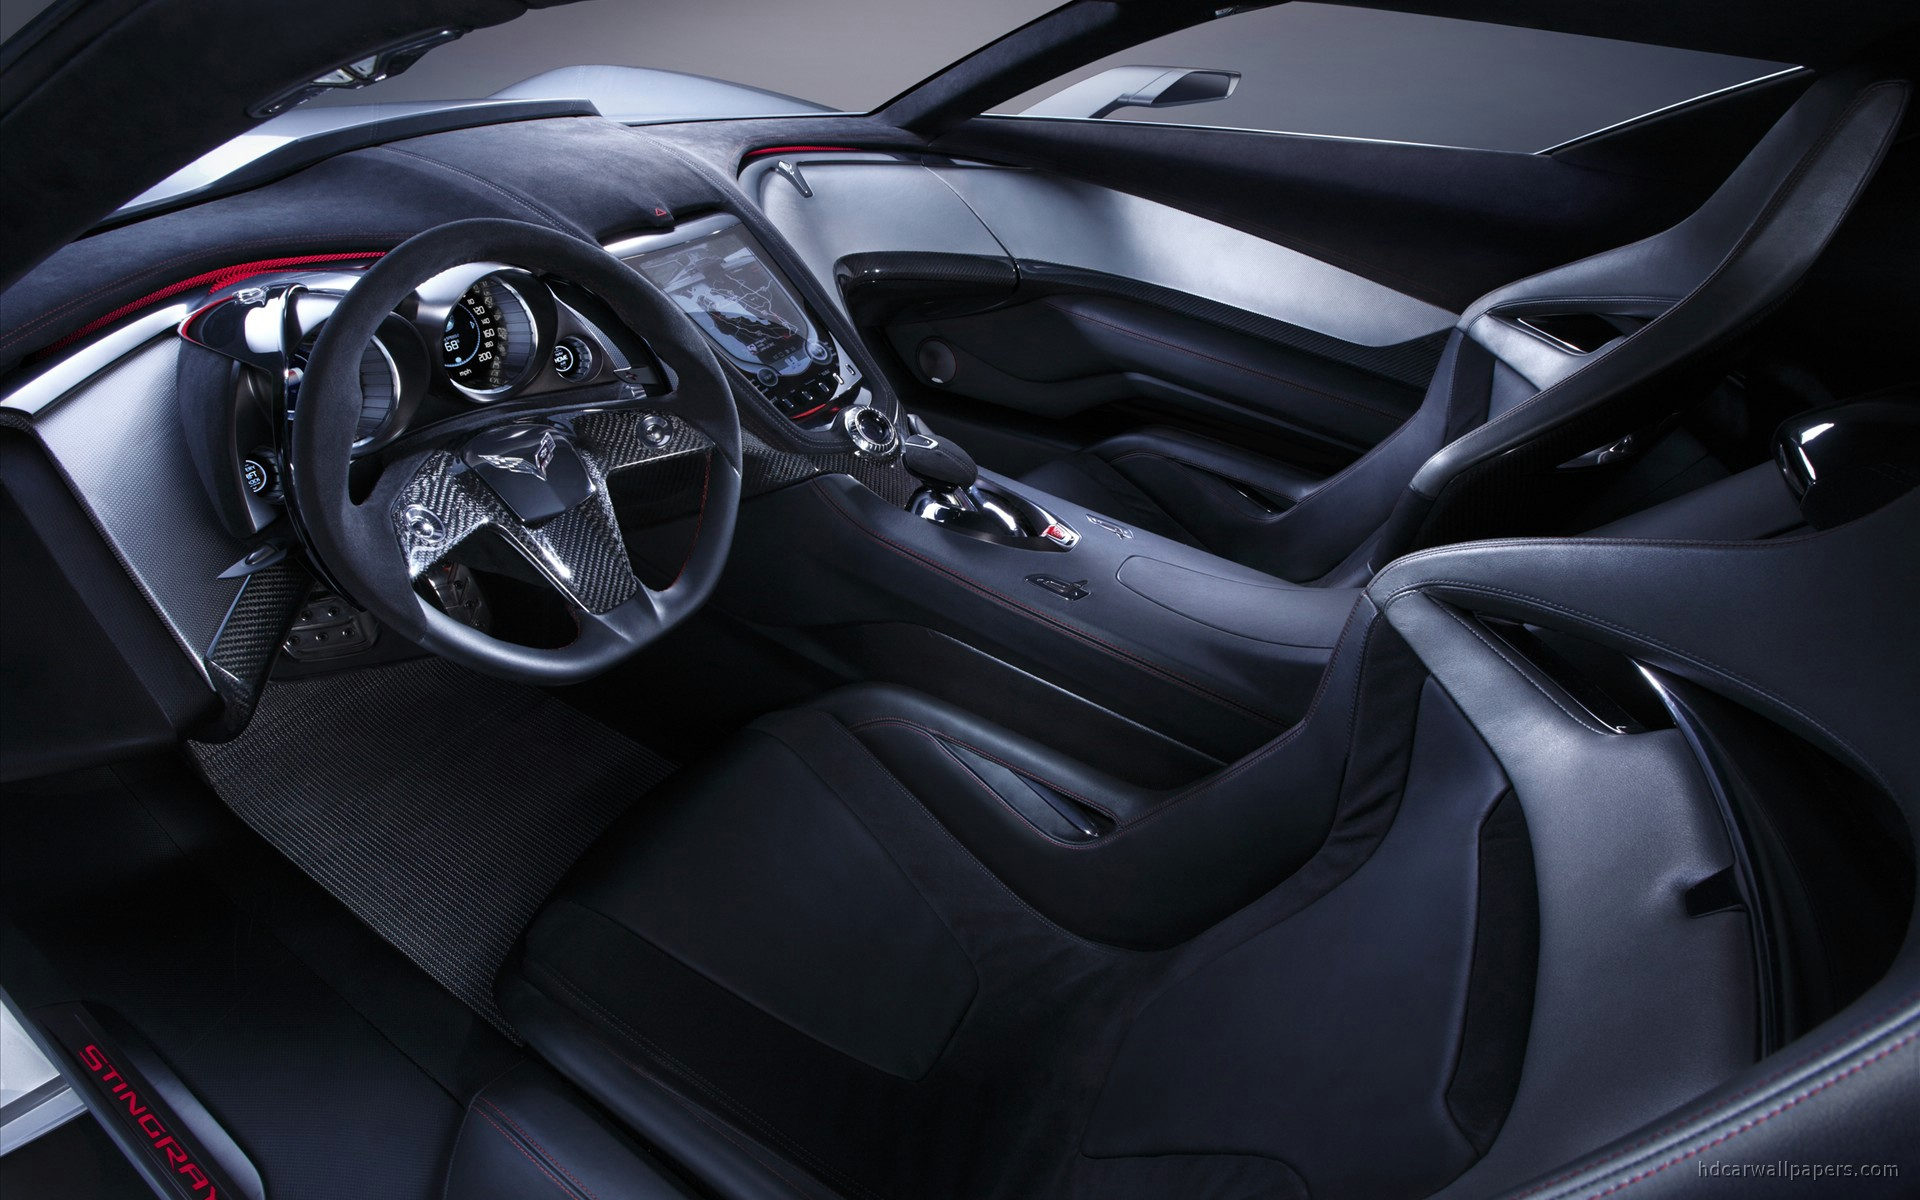 chevrolet corvette stingray concept interior wallpaper hd car wallpapers id 451. Black Bedroom Furniture Sets. Home Design Ideas